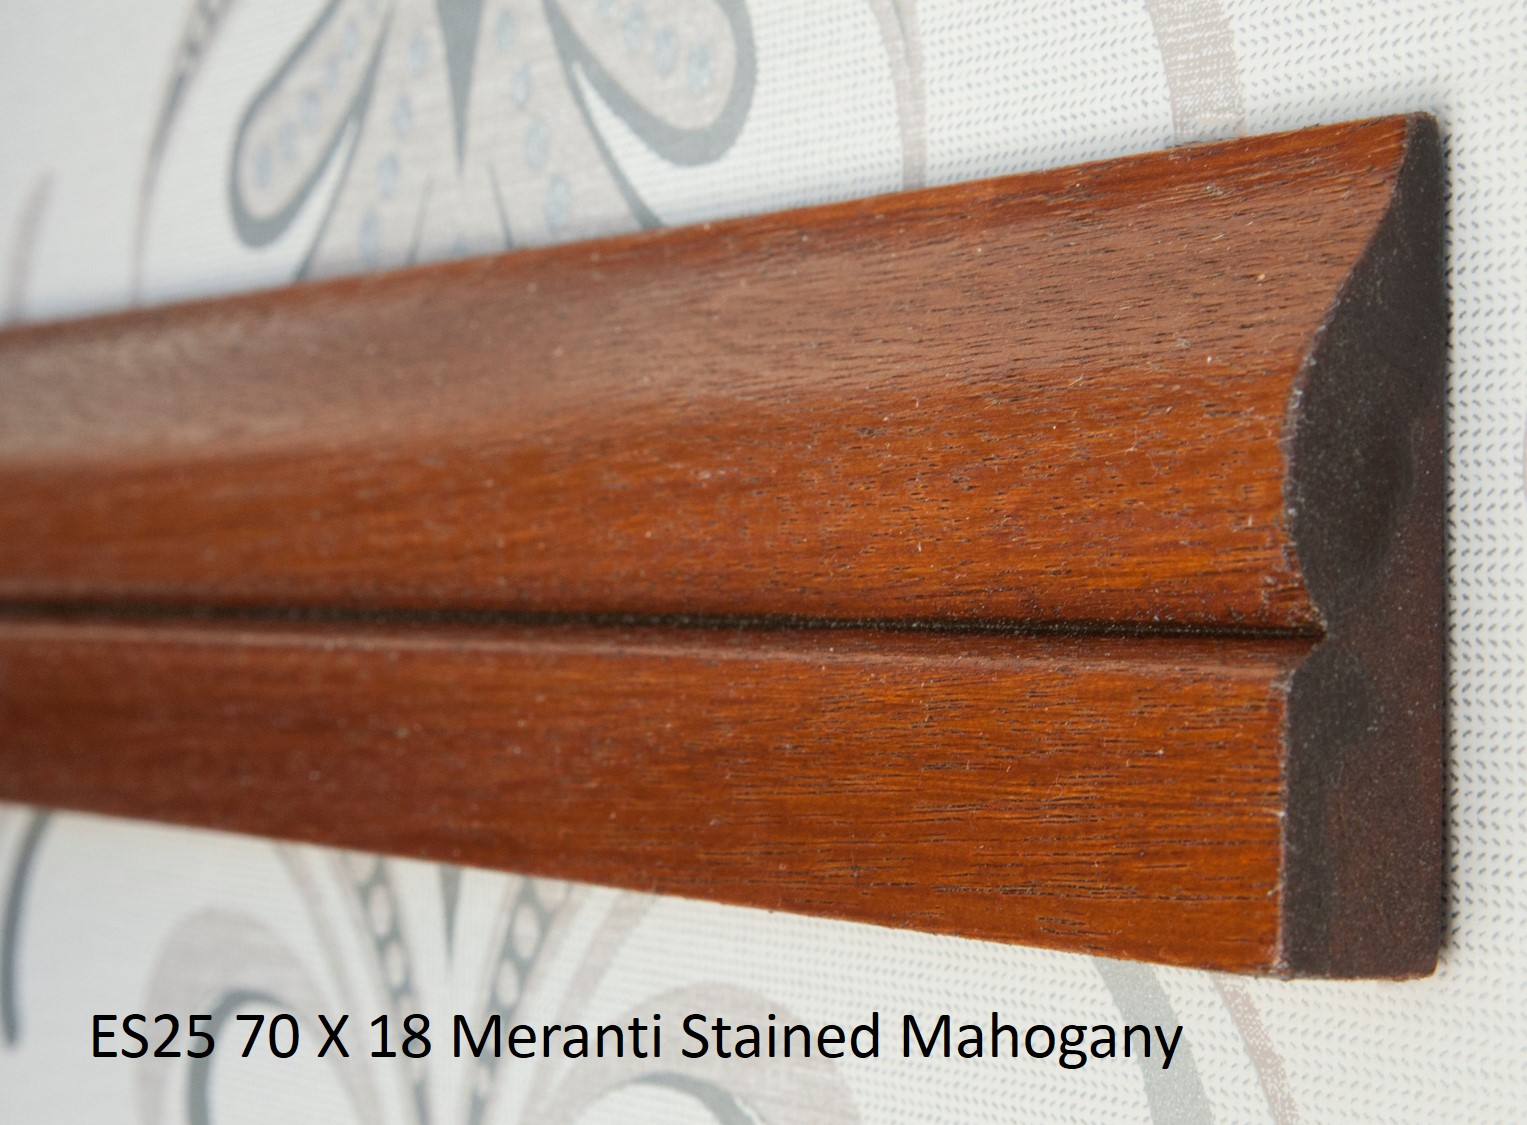 ES25 70 X 18 Meranti Stained Mahogany